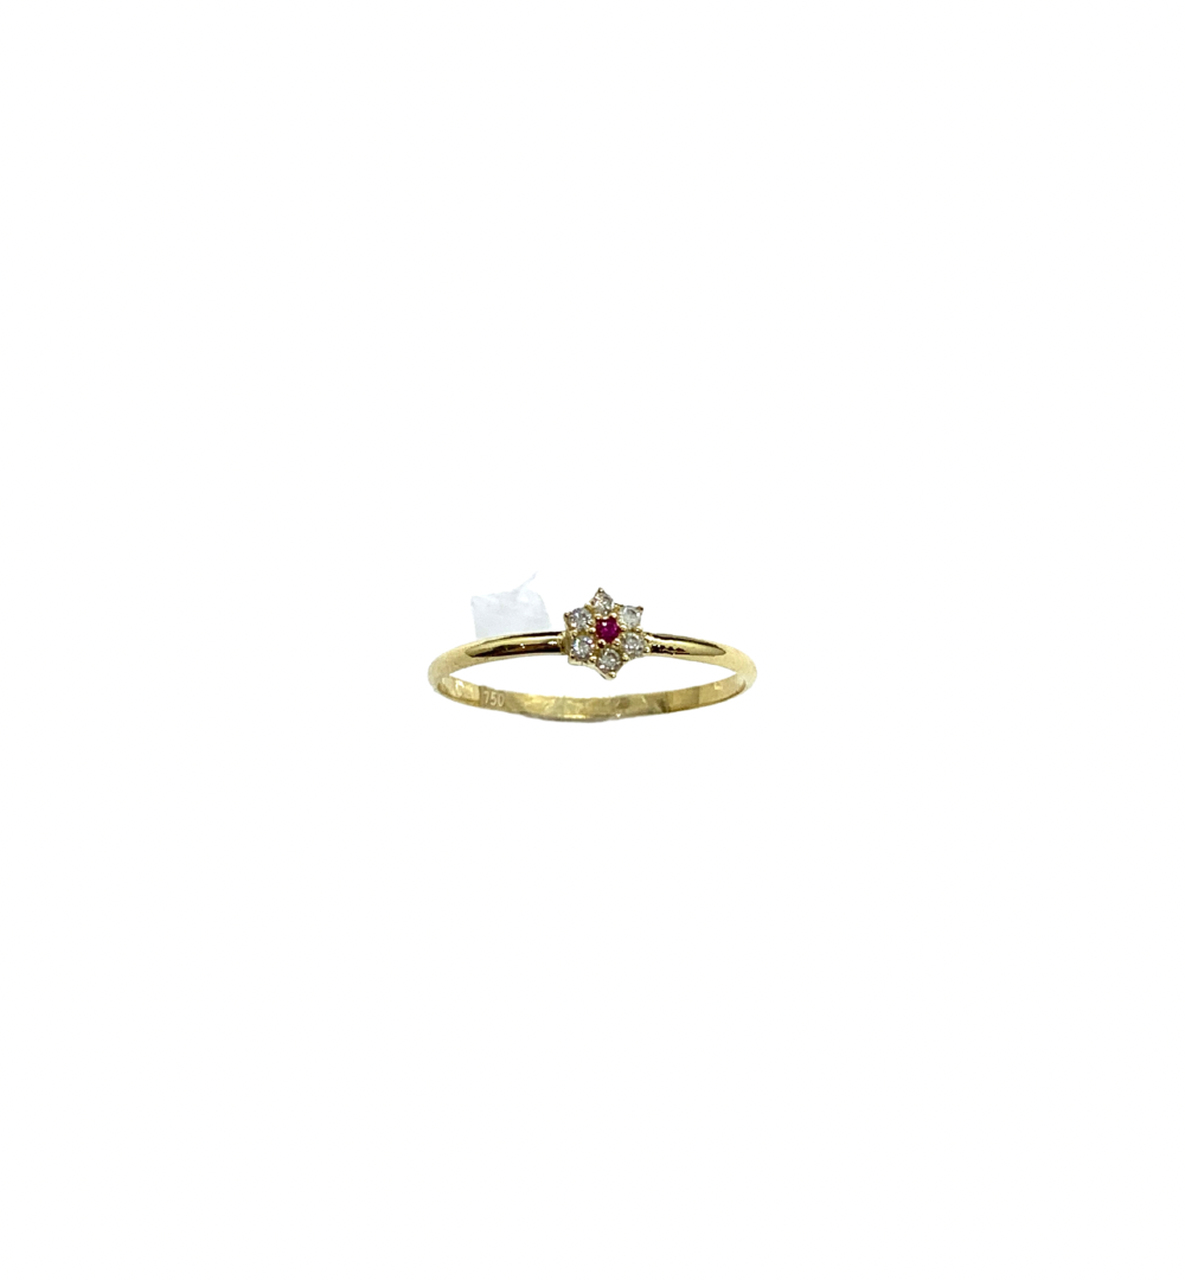 Anel Ouro 18k Flor Rubi